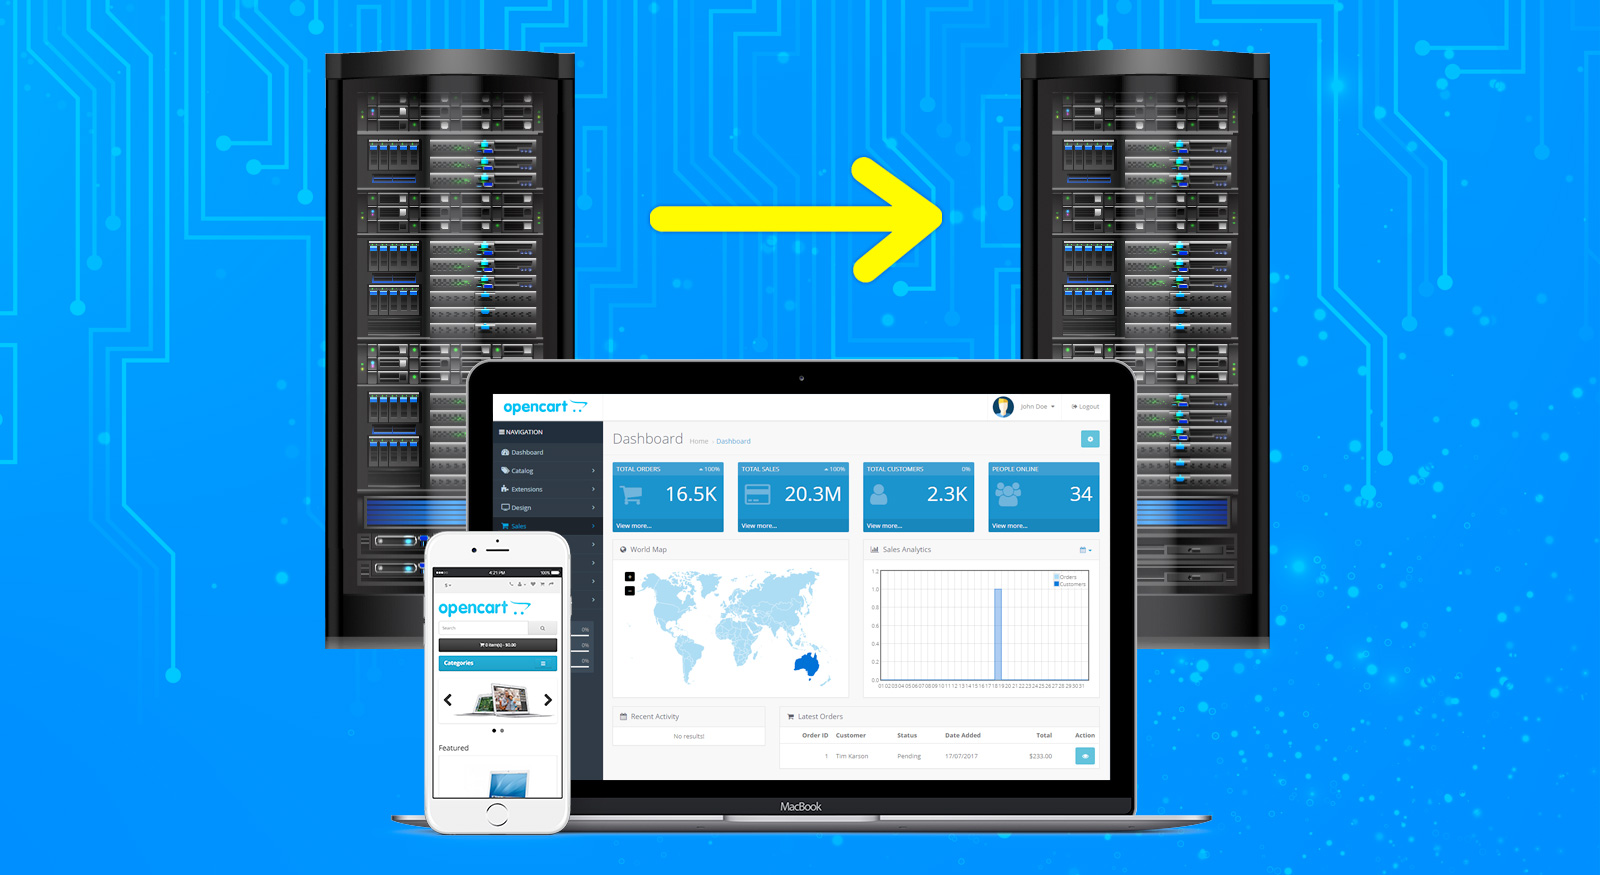 opencart-move-domain-web-host-onepoint-software-solutions